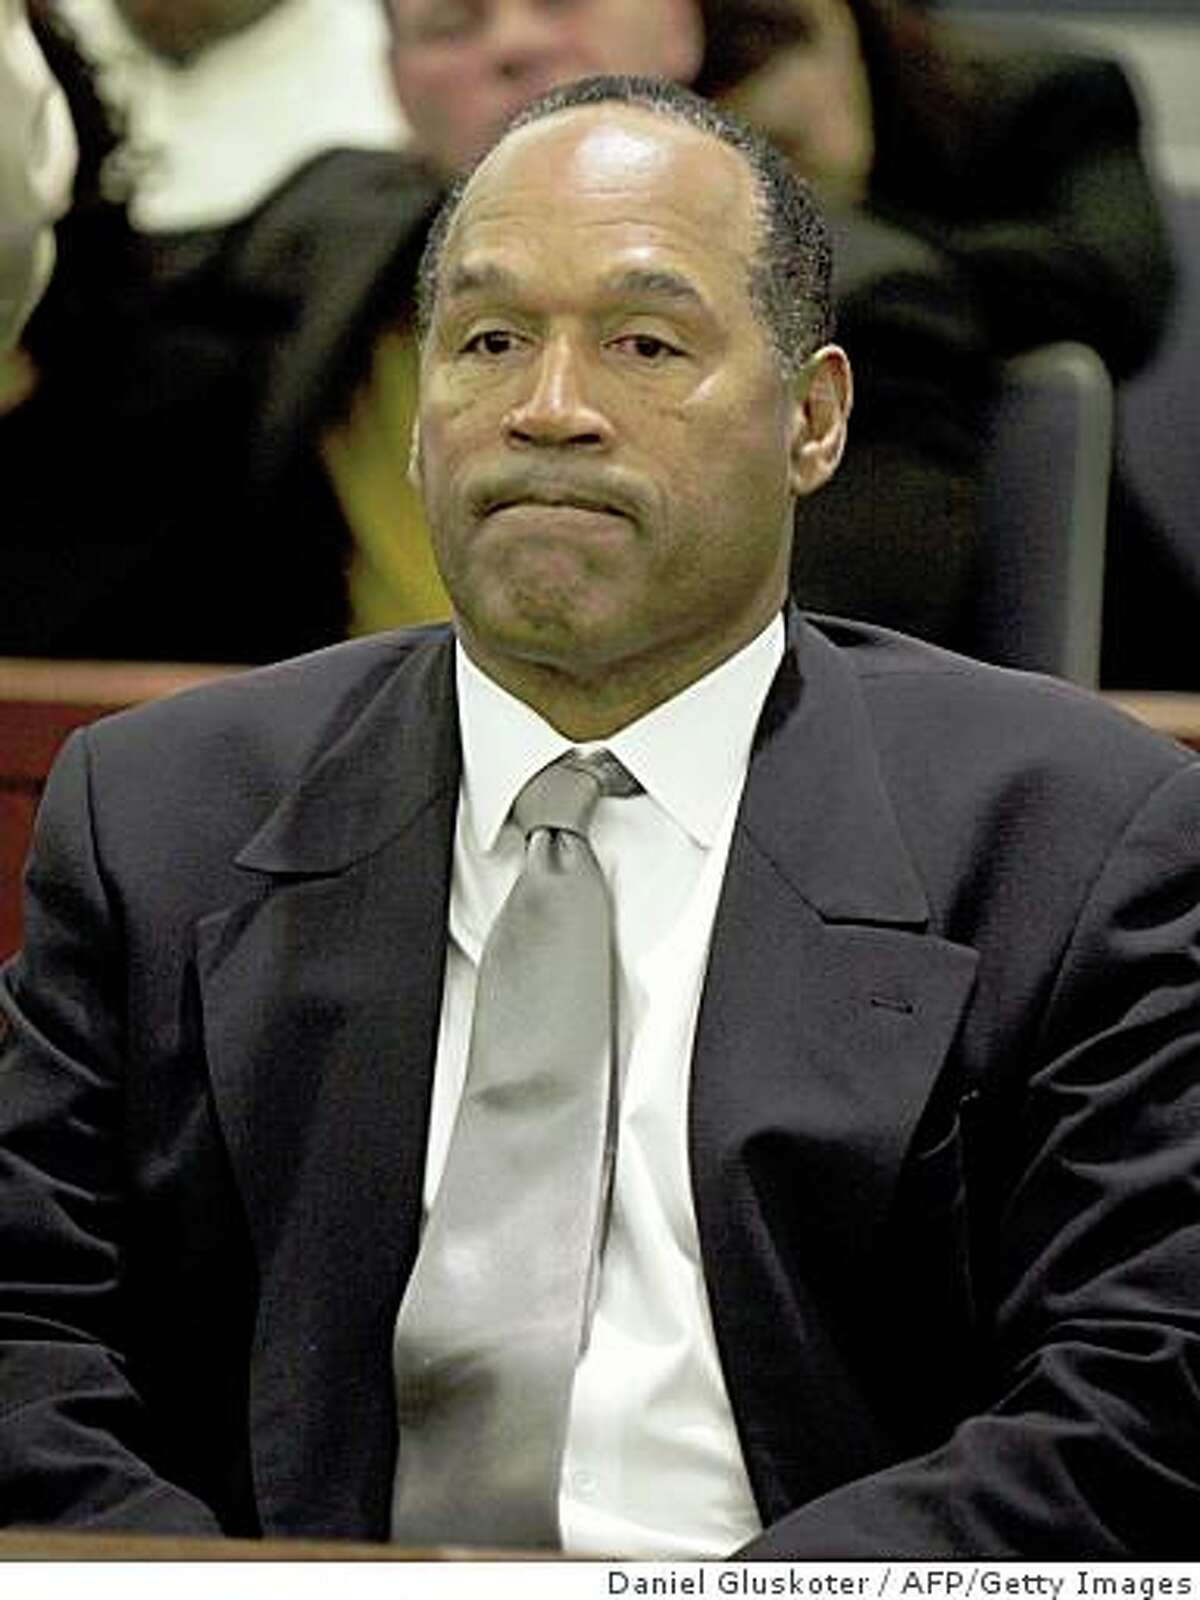 O.J. Simpson reacts as he is found guilty on all 12 charges, including felony kidnapping, armed robbery and conspiracy at the Clark County Regional Justice Center on October 3, 2008 in Las Vegas. Simpson and co-defendant Clarence